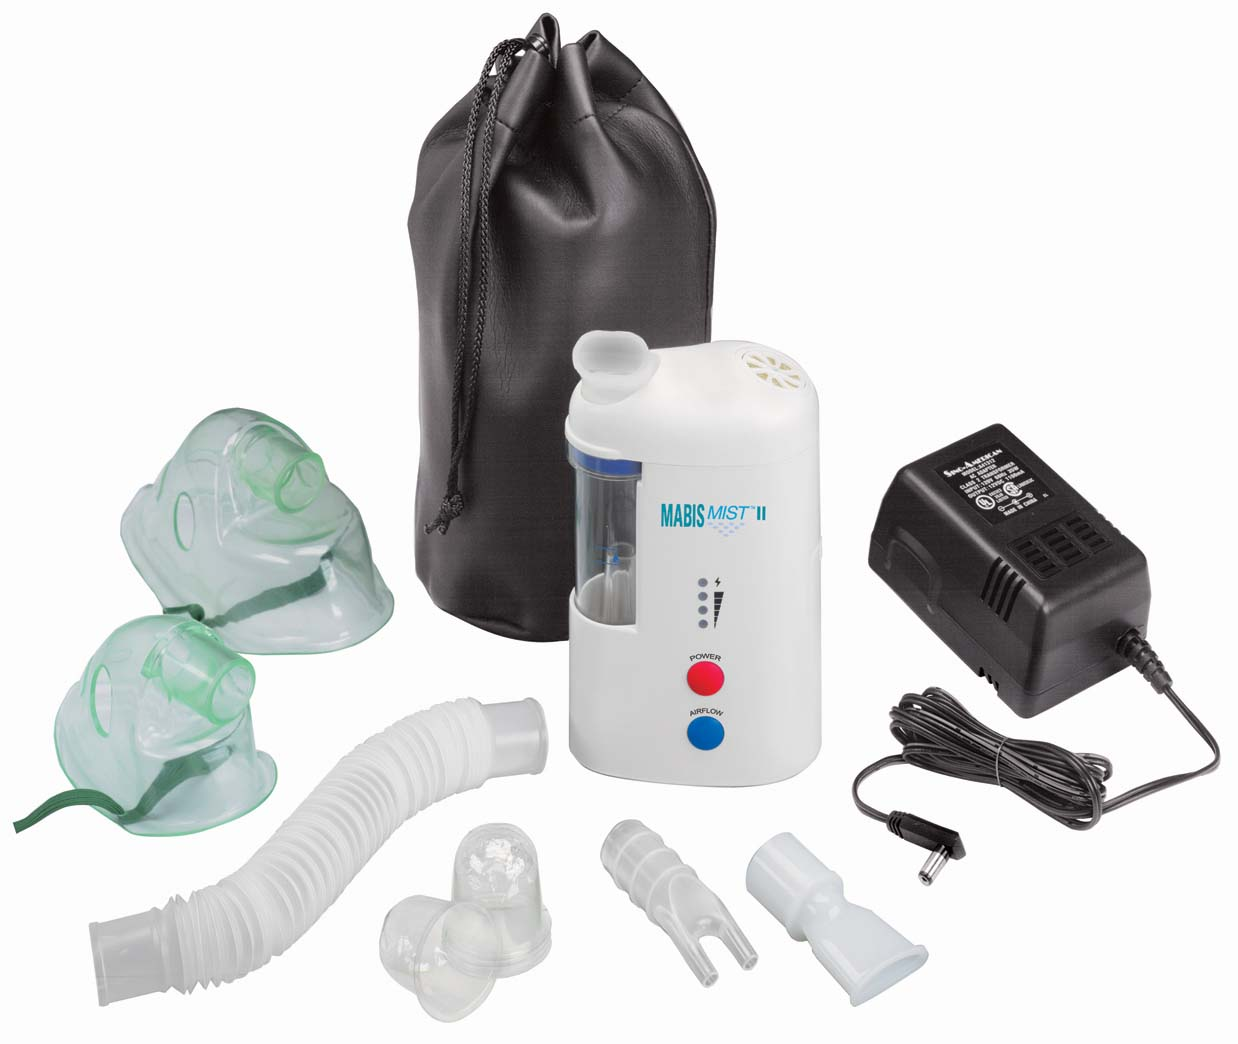 nasal-piece-for-all-mabismist-ultrasonic-nebulizers-40-276-000-lr-3.jpg